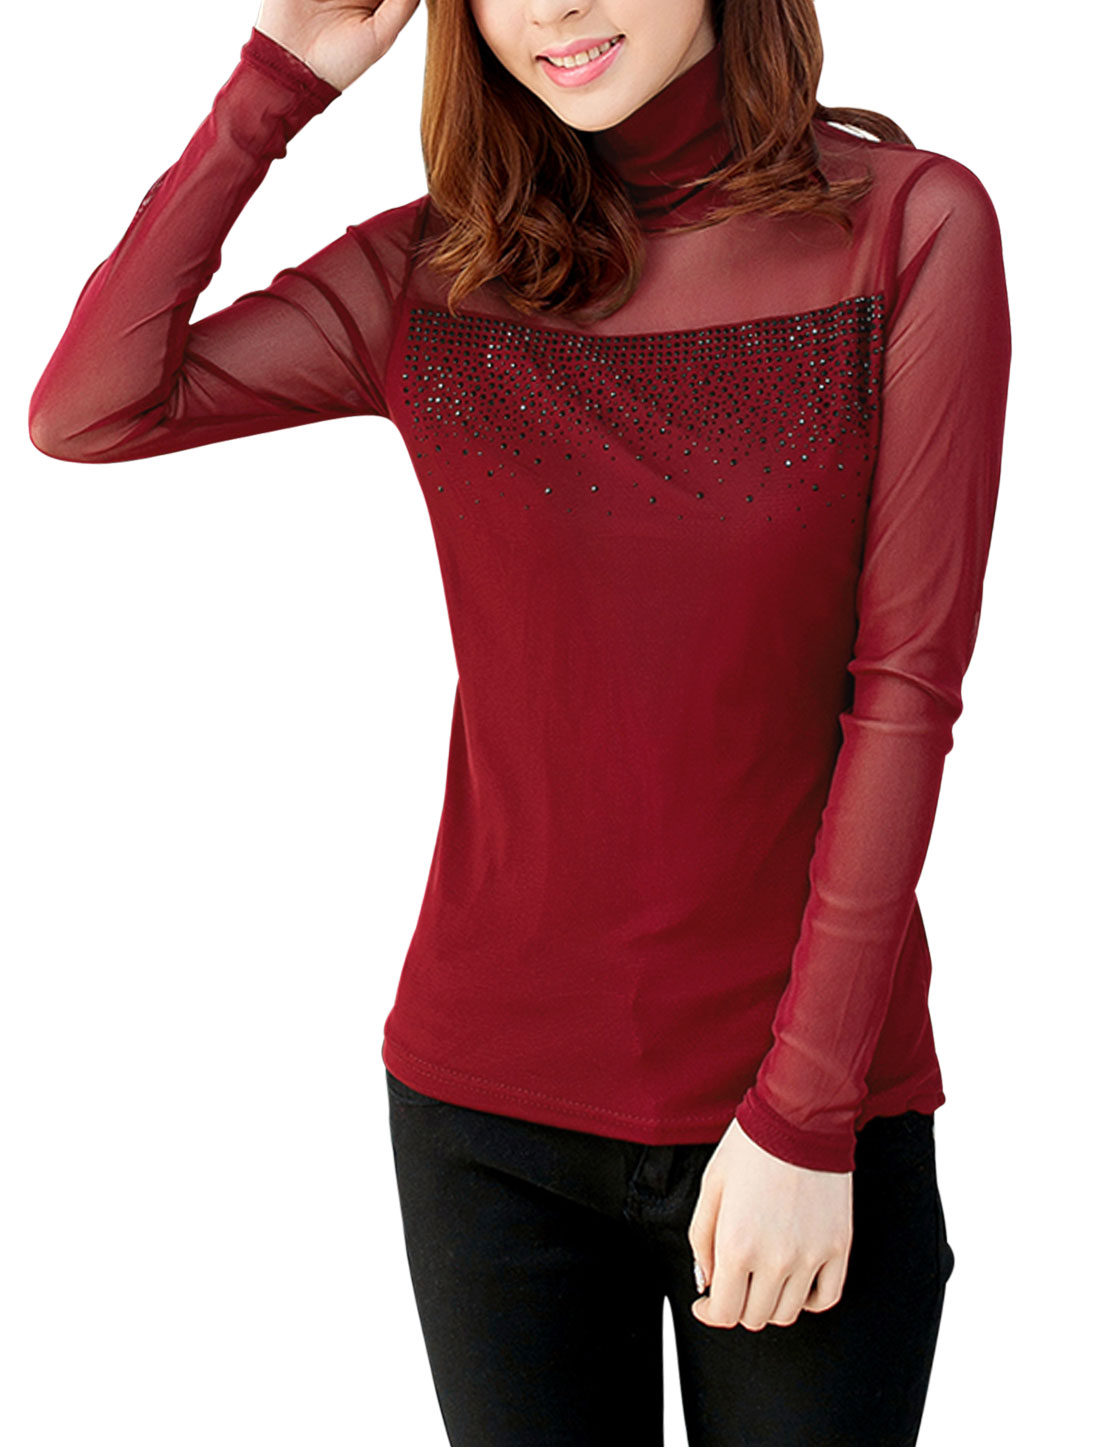 Lady Stretch Beaded Embellished Slipover Top Warm Red S